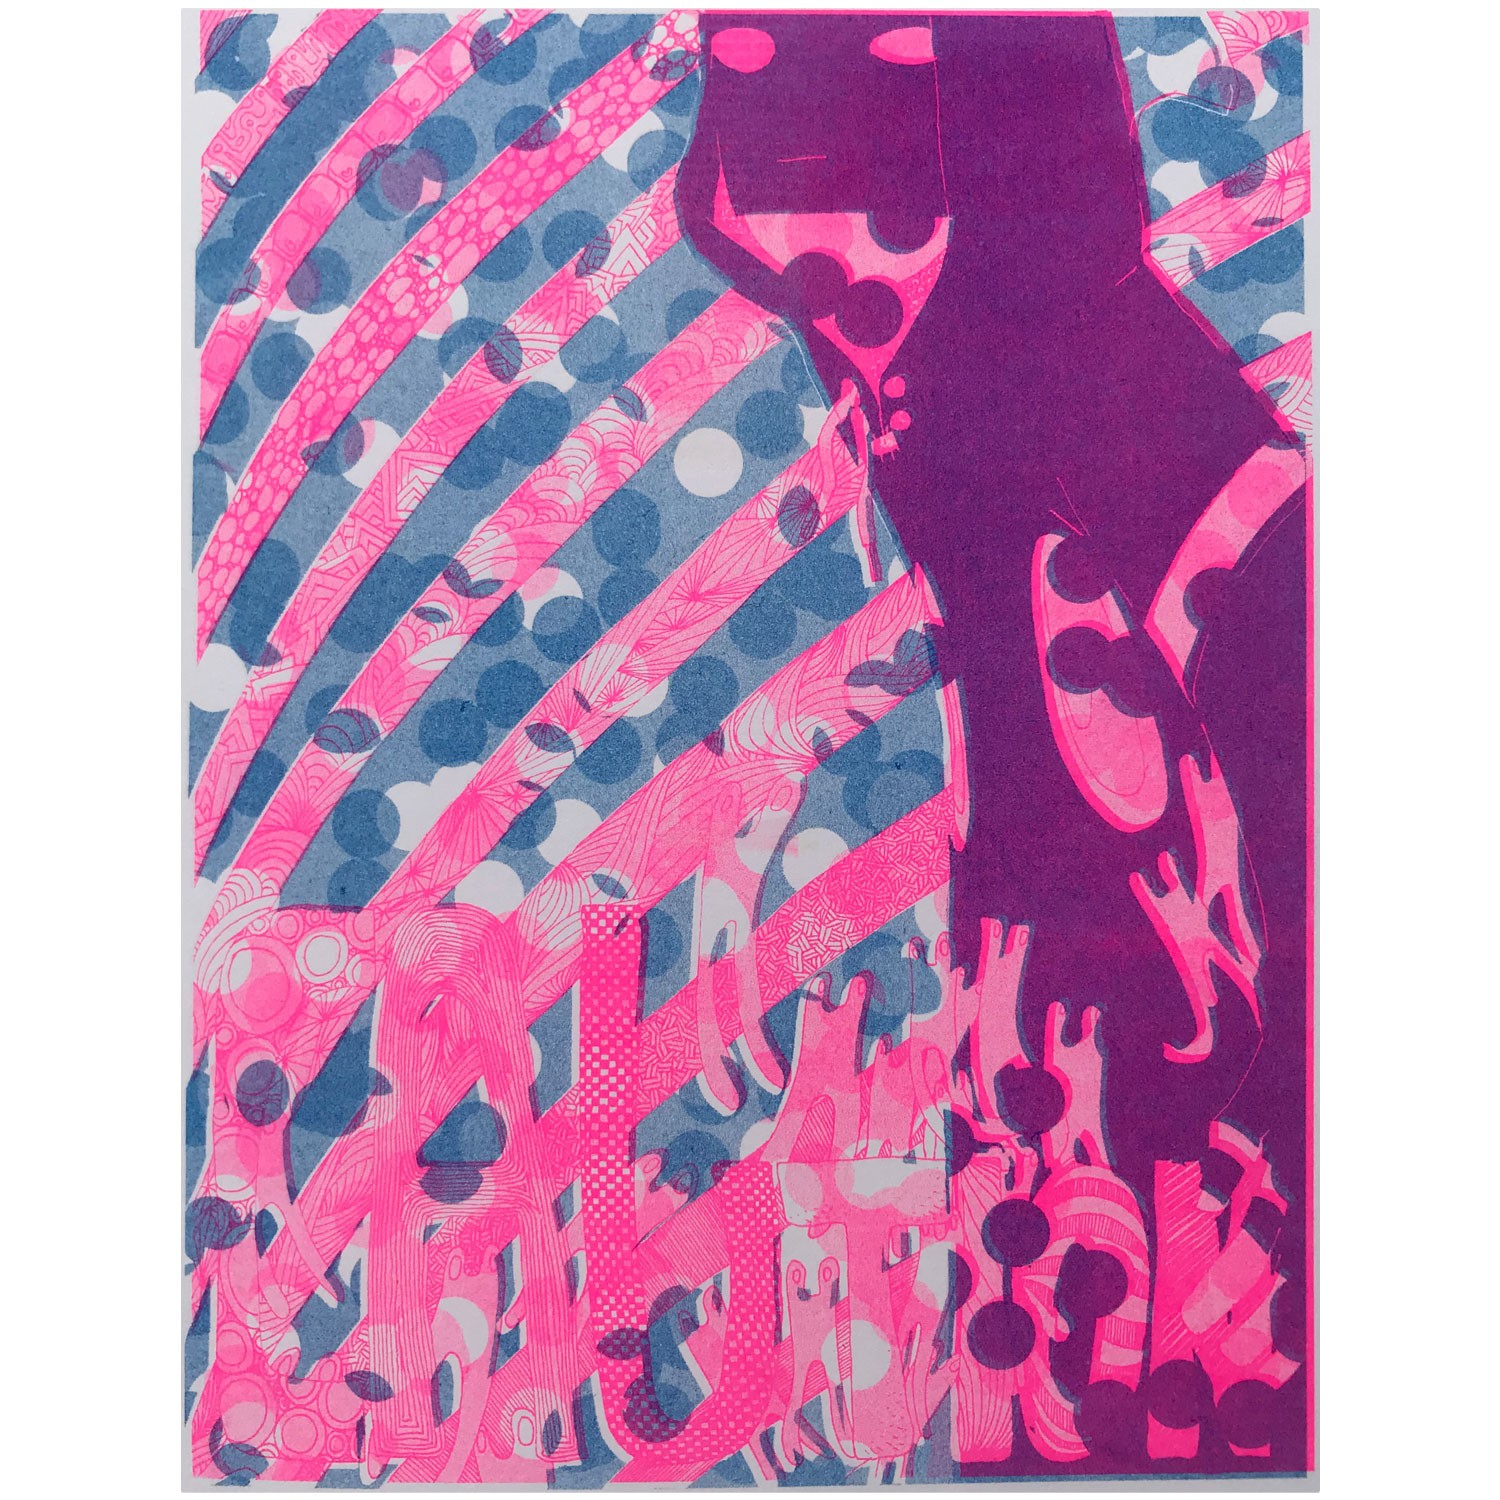 Risograph Print Caution Pink full